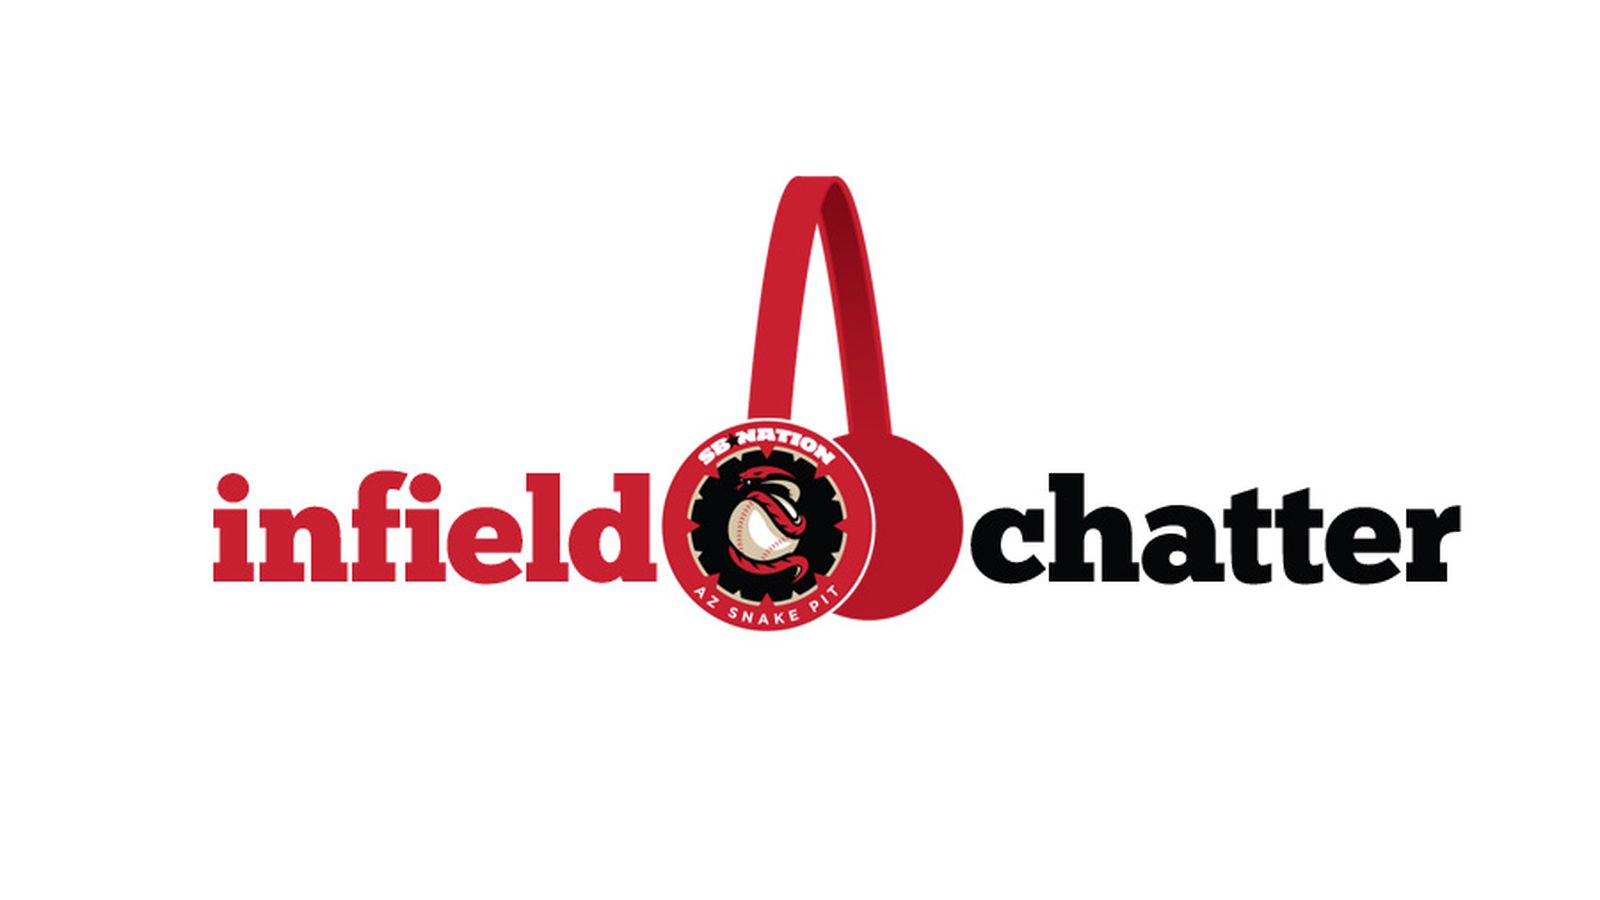 Infield-chatter-logo.0.0